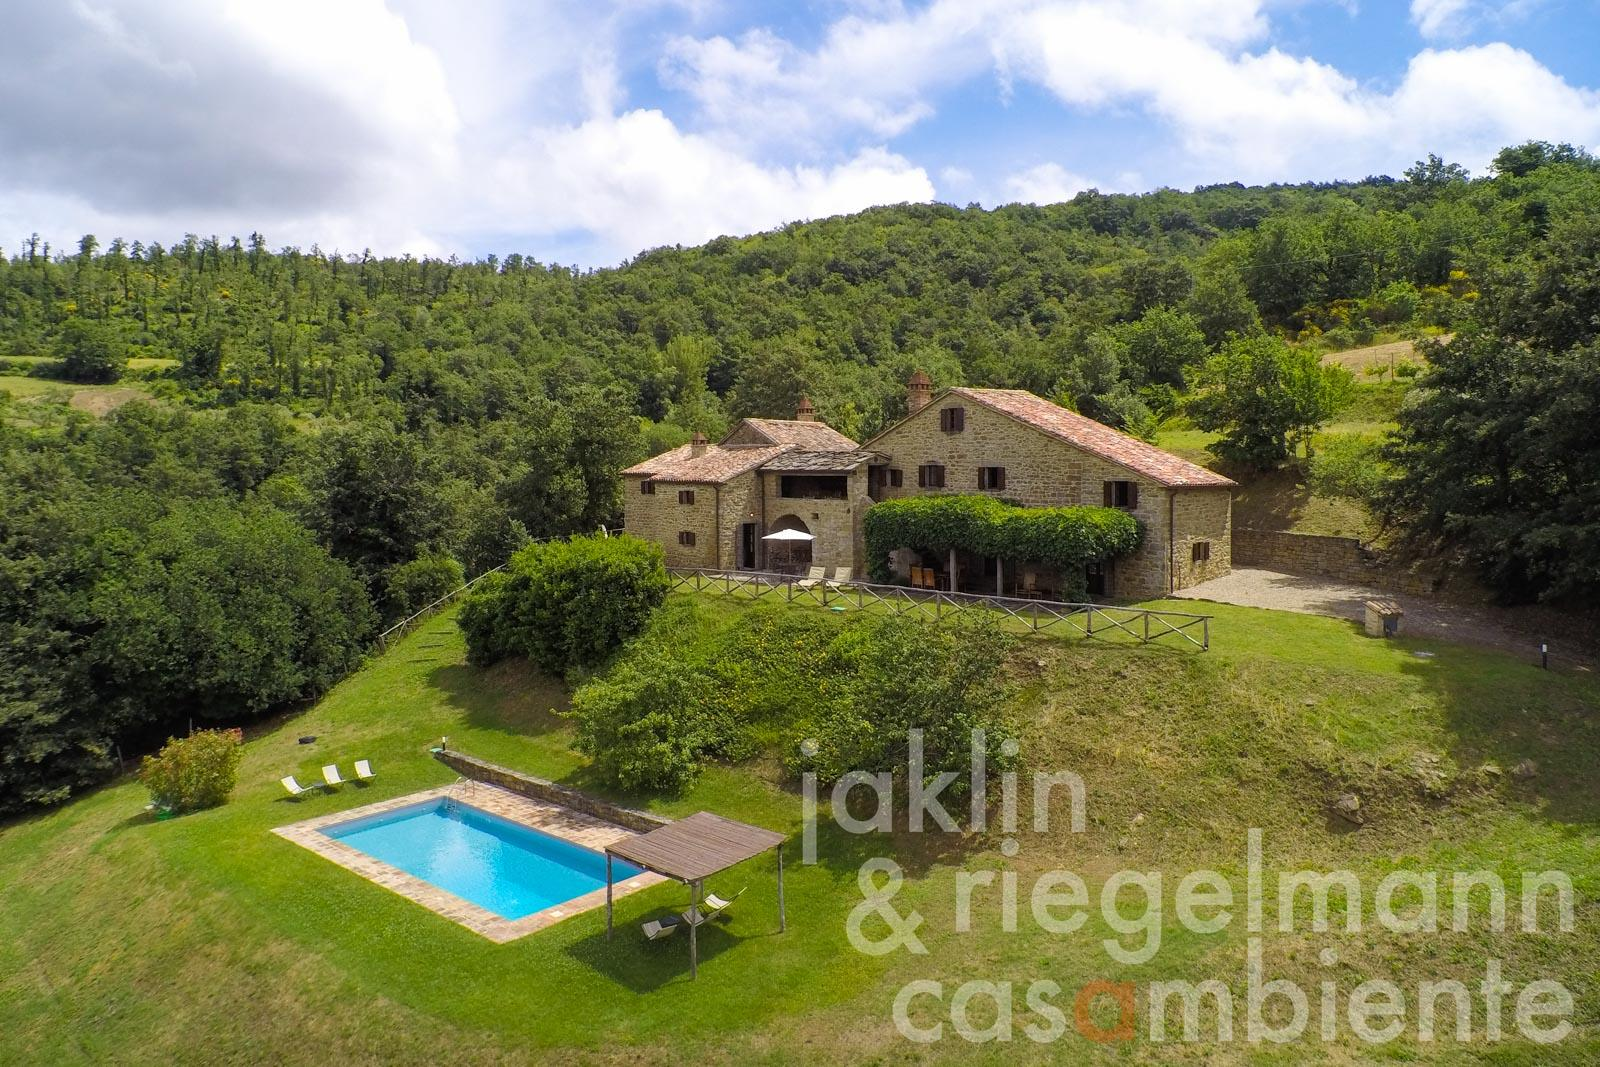 The traditional Tuscan stone farmhouse for sale with two independent houses, swimming pool and garden